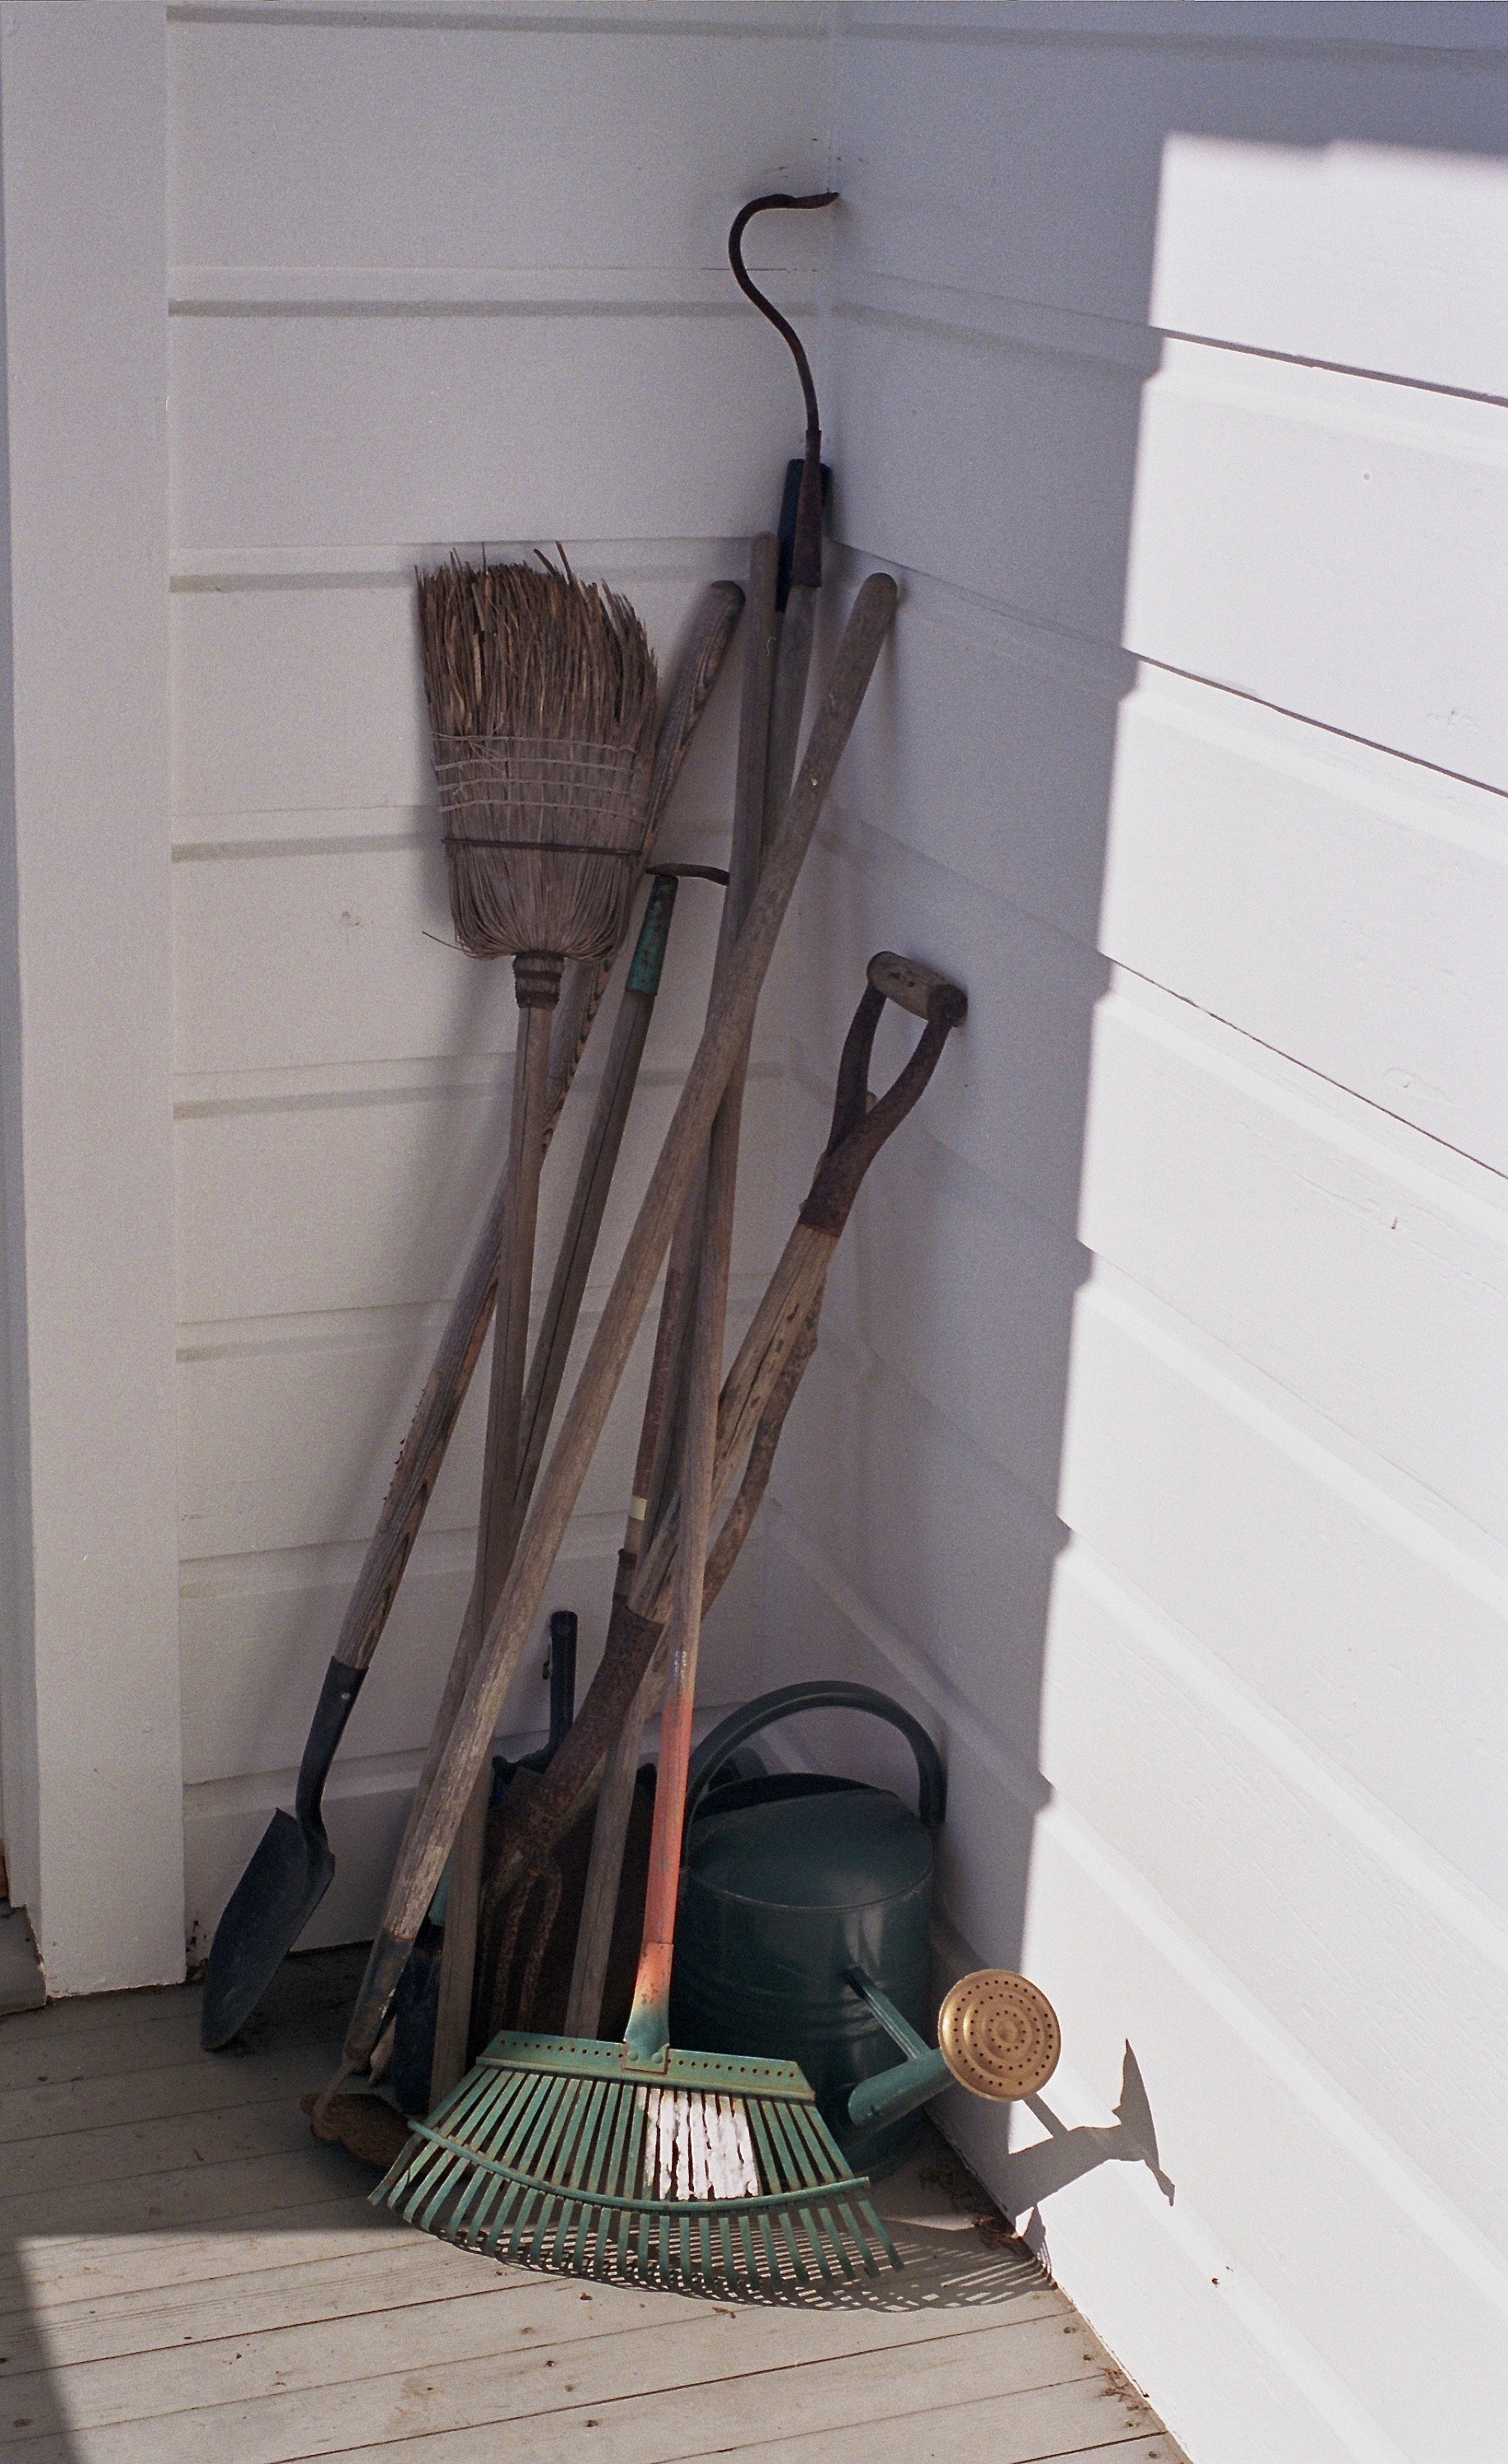 Tools on the sunny front porch